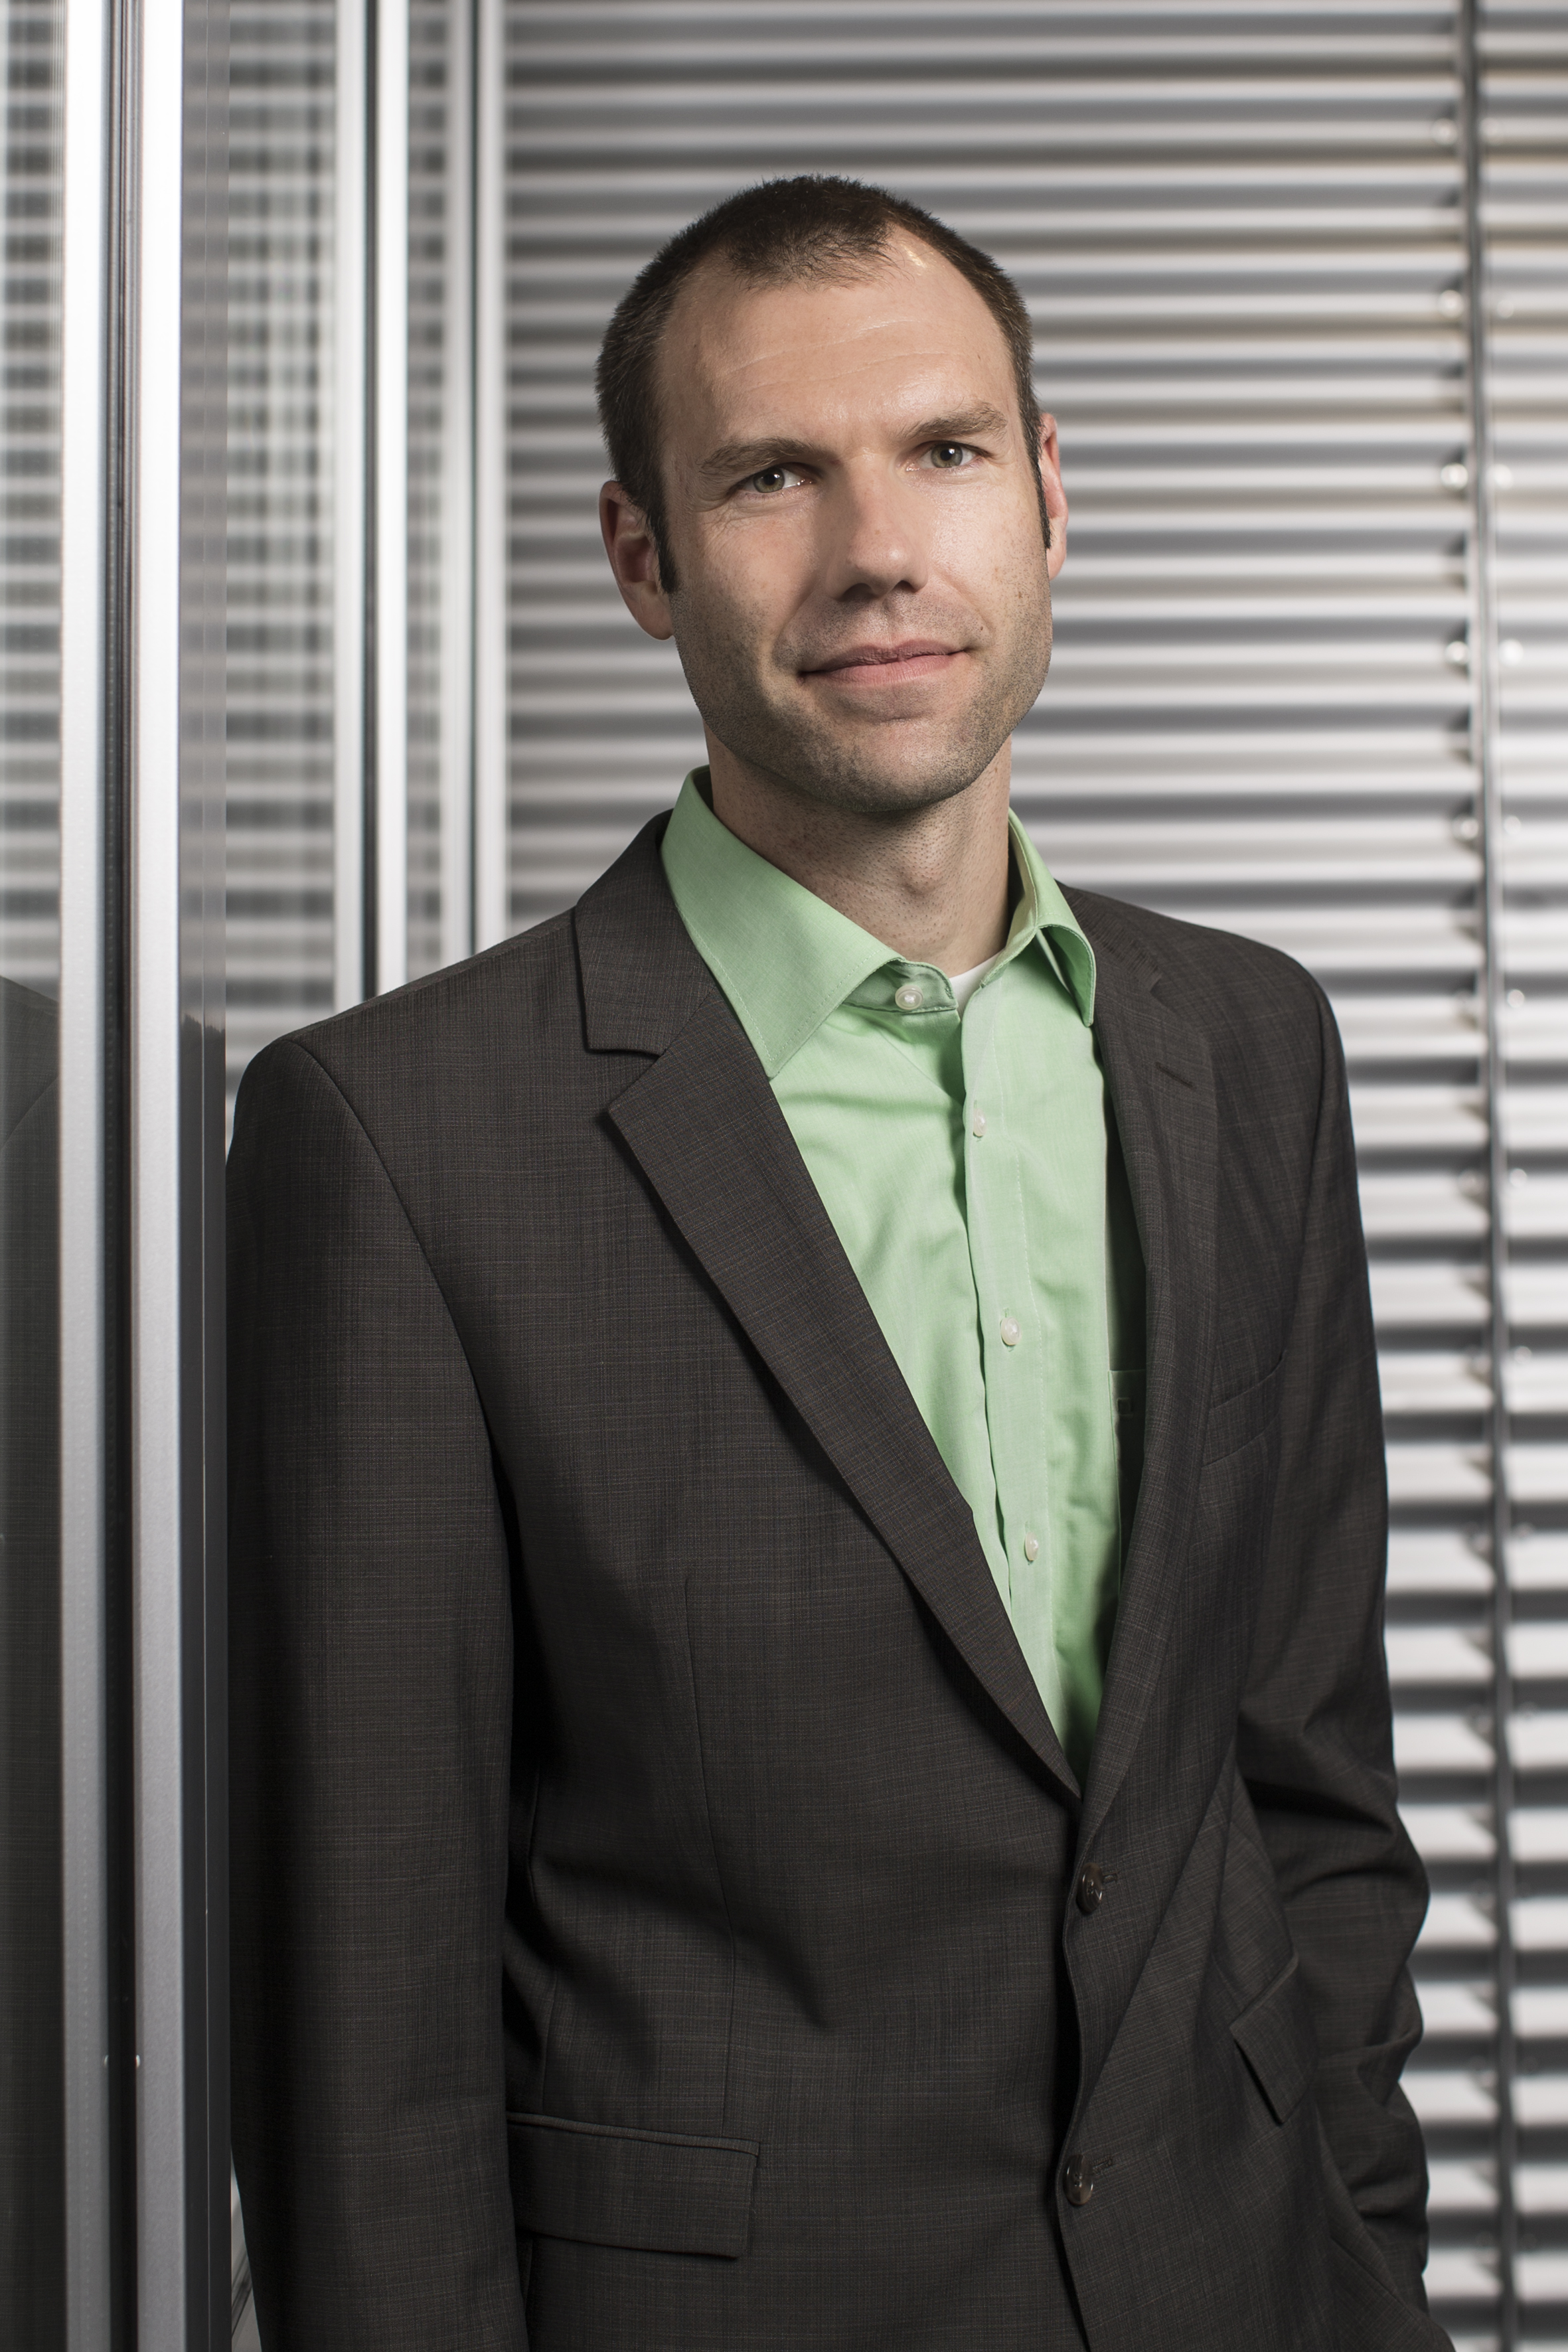 Dr.-Ing. Florian Meyer, project management mentor from the Technical Development department of Audi AG